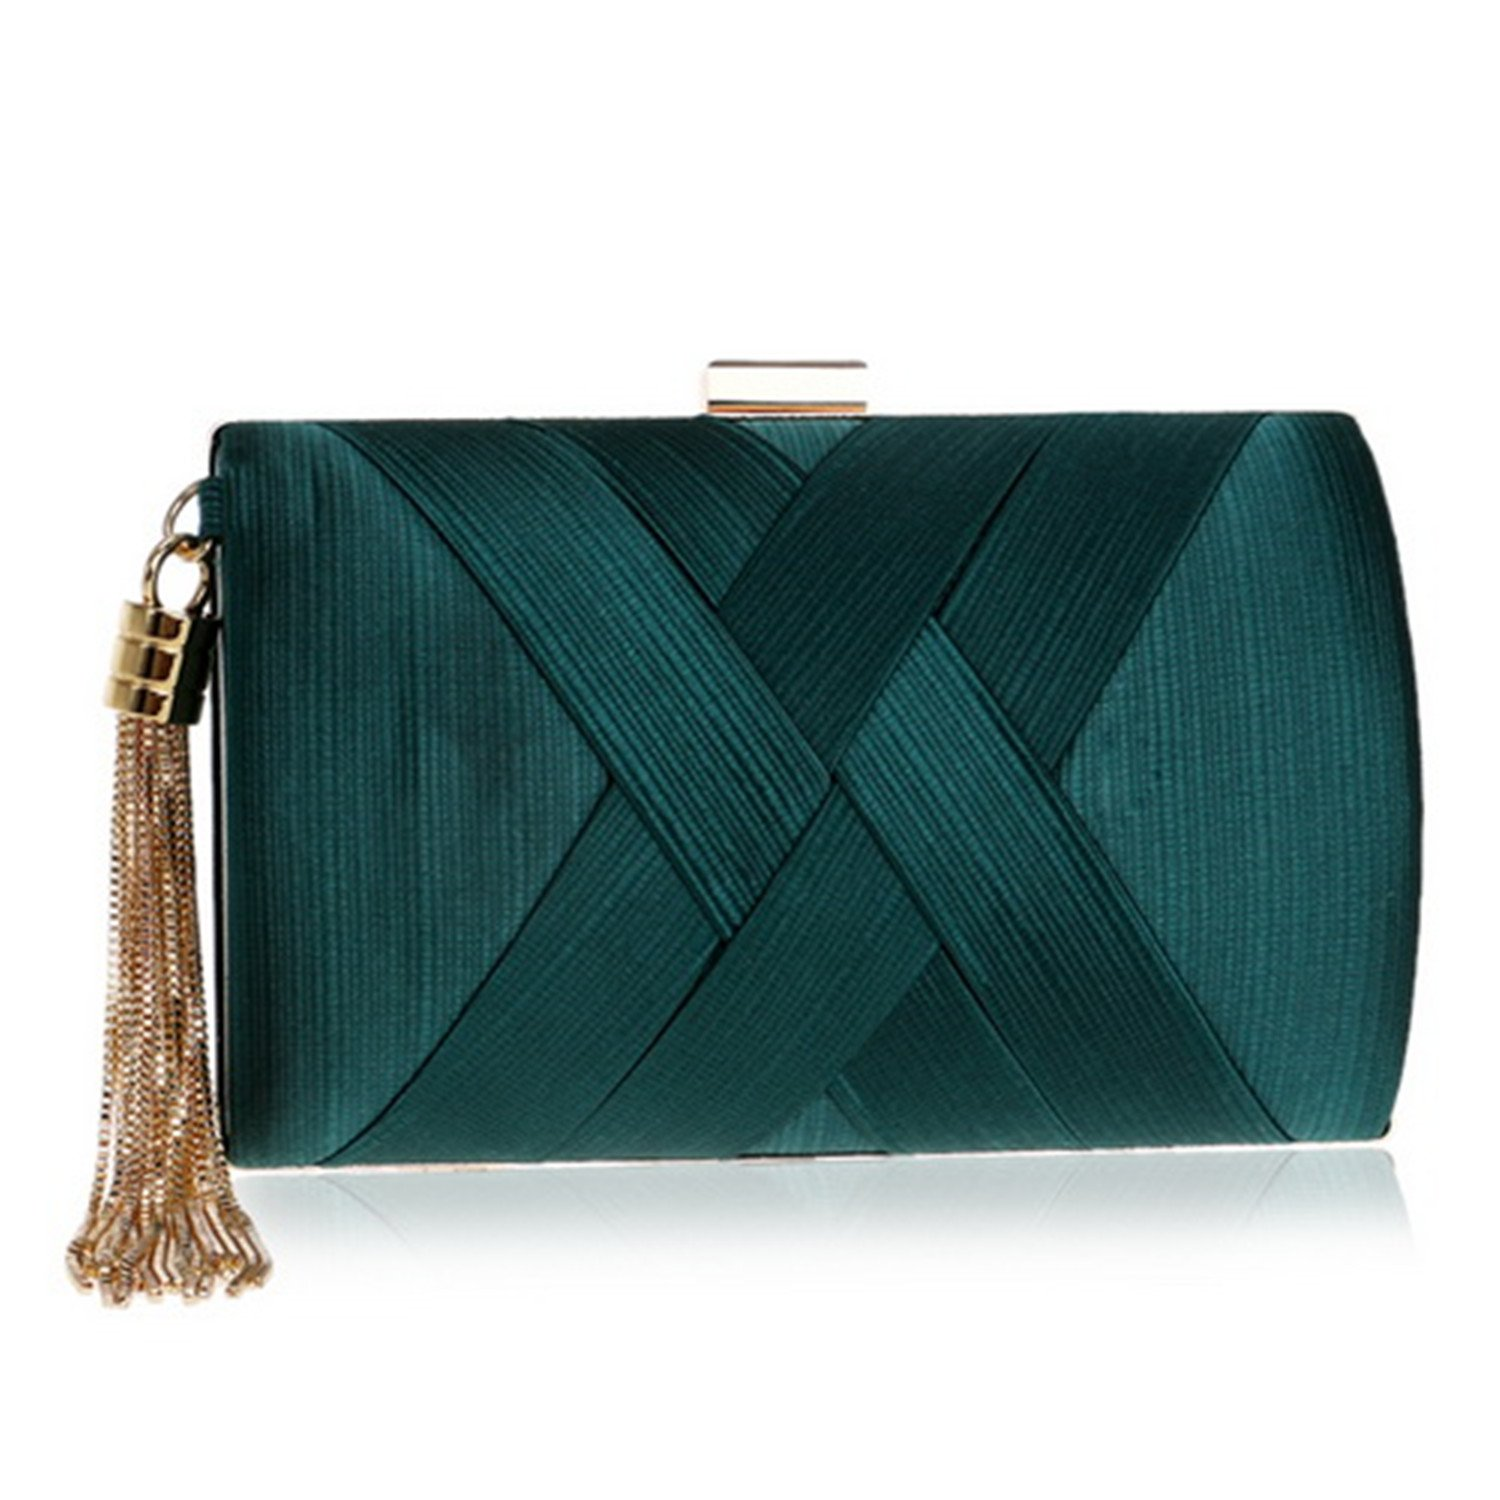 Metal Tassel Lady Clutch Bag With Chain Shoulder Handbags Classical Style Small Purse Clutch Bags